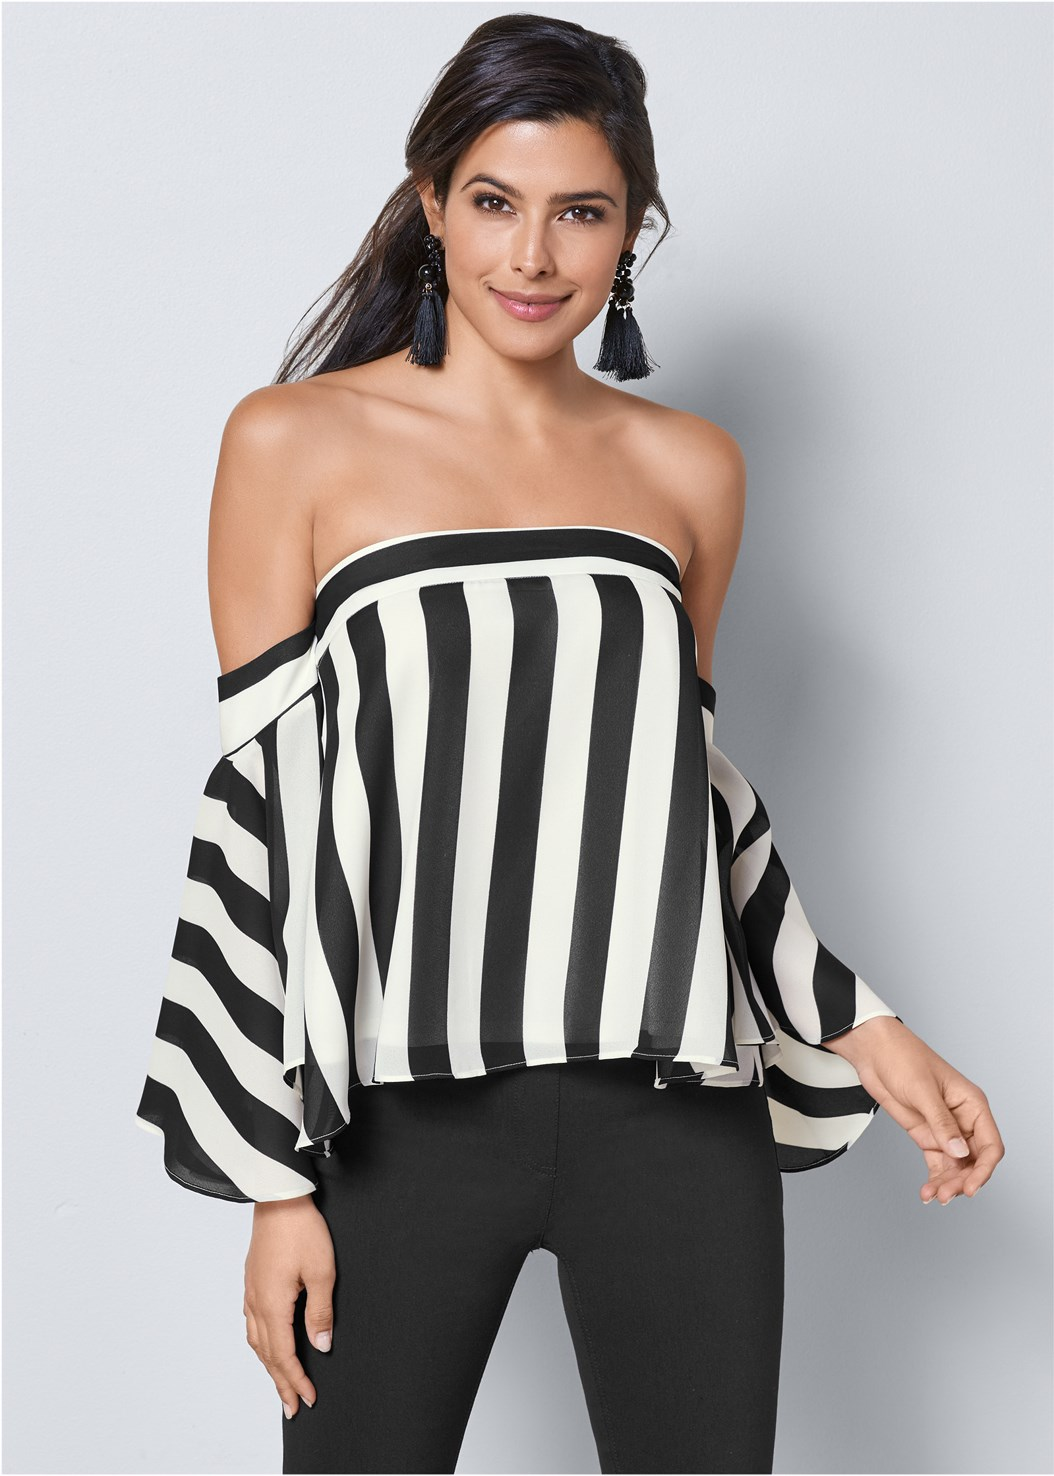 Stripe Bell Sleeve Top,Mid Rise Slimming Stretch Jeggings,High Heel Strappy Sandals